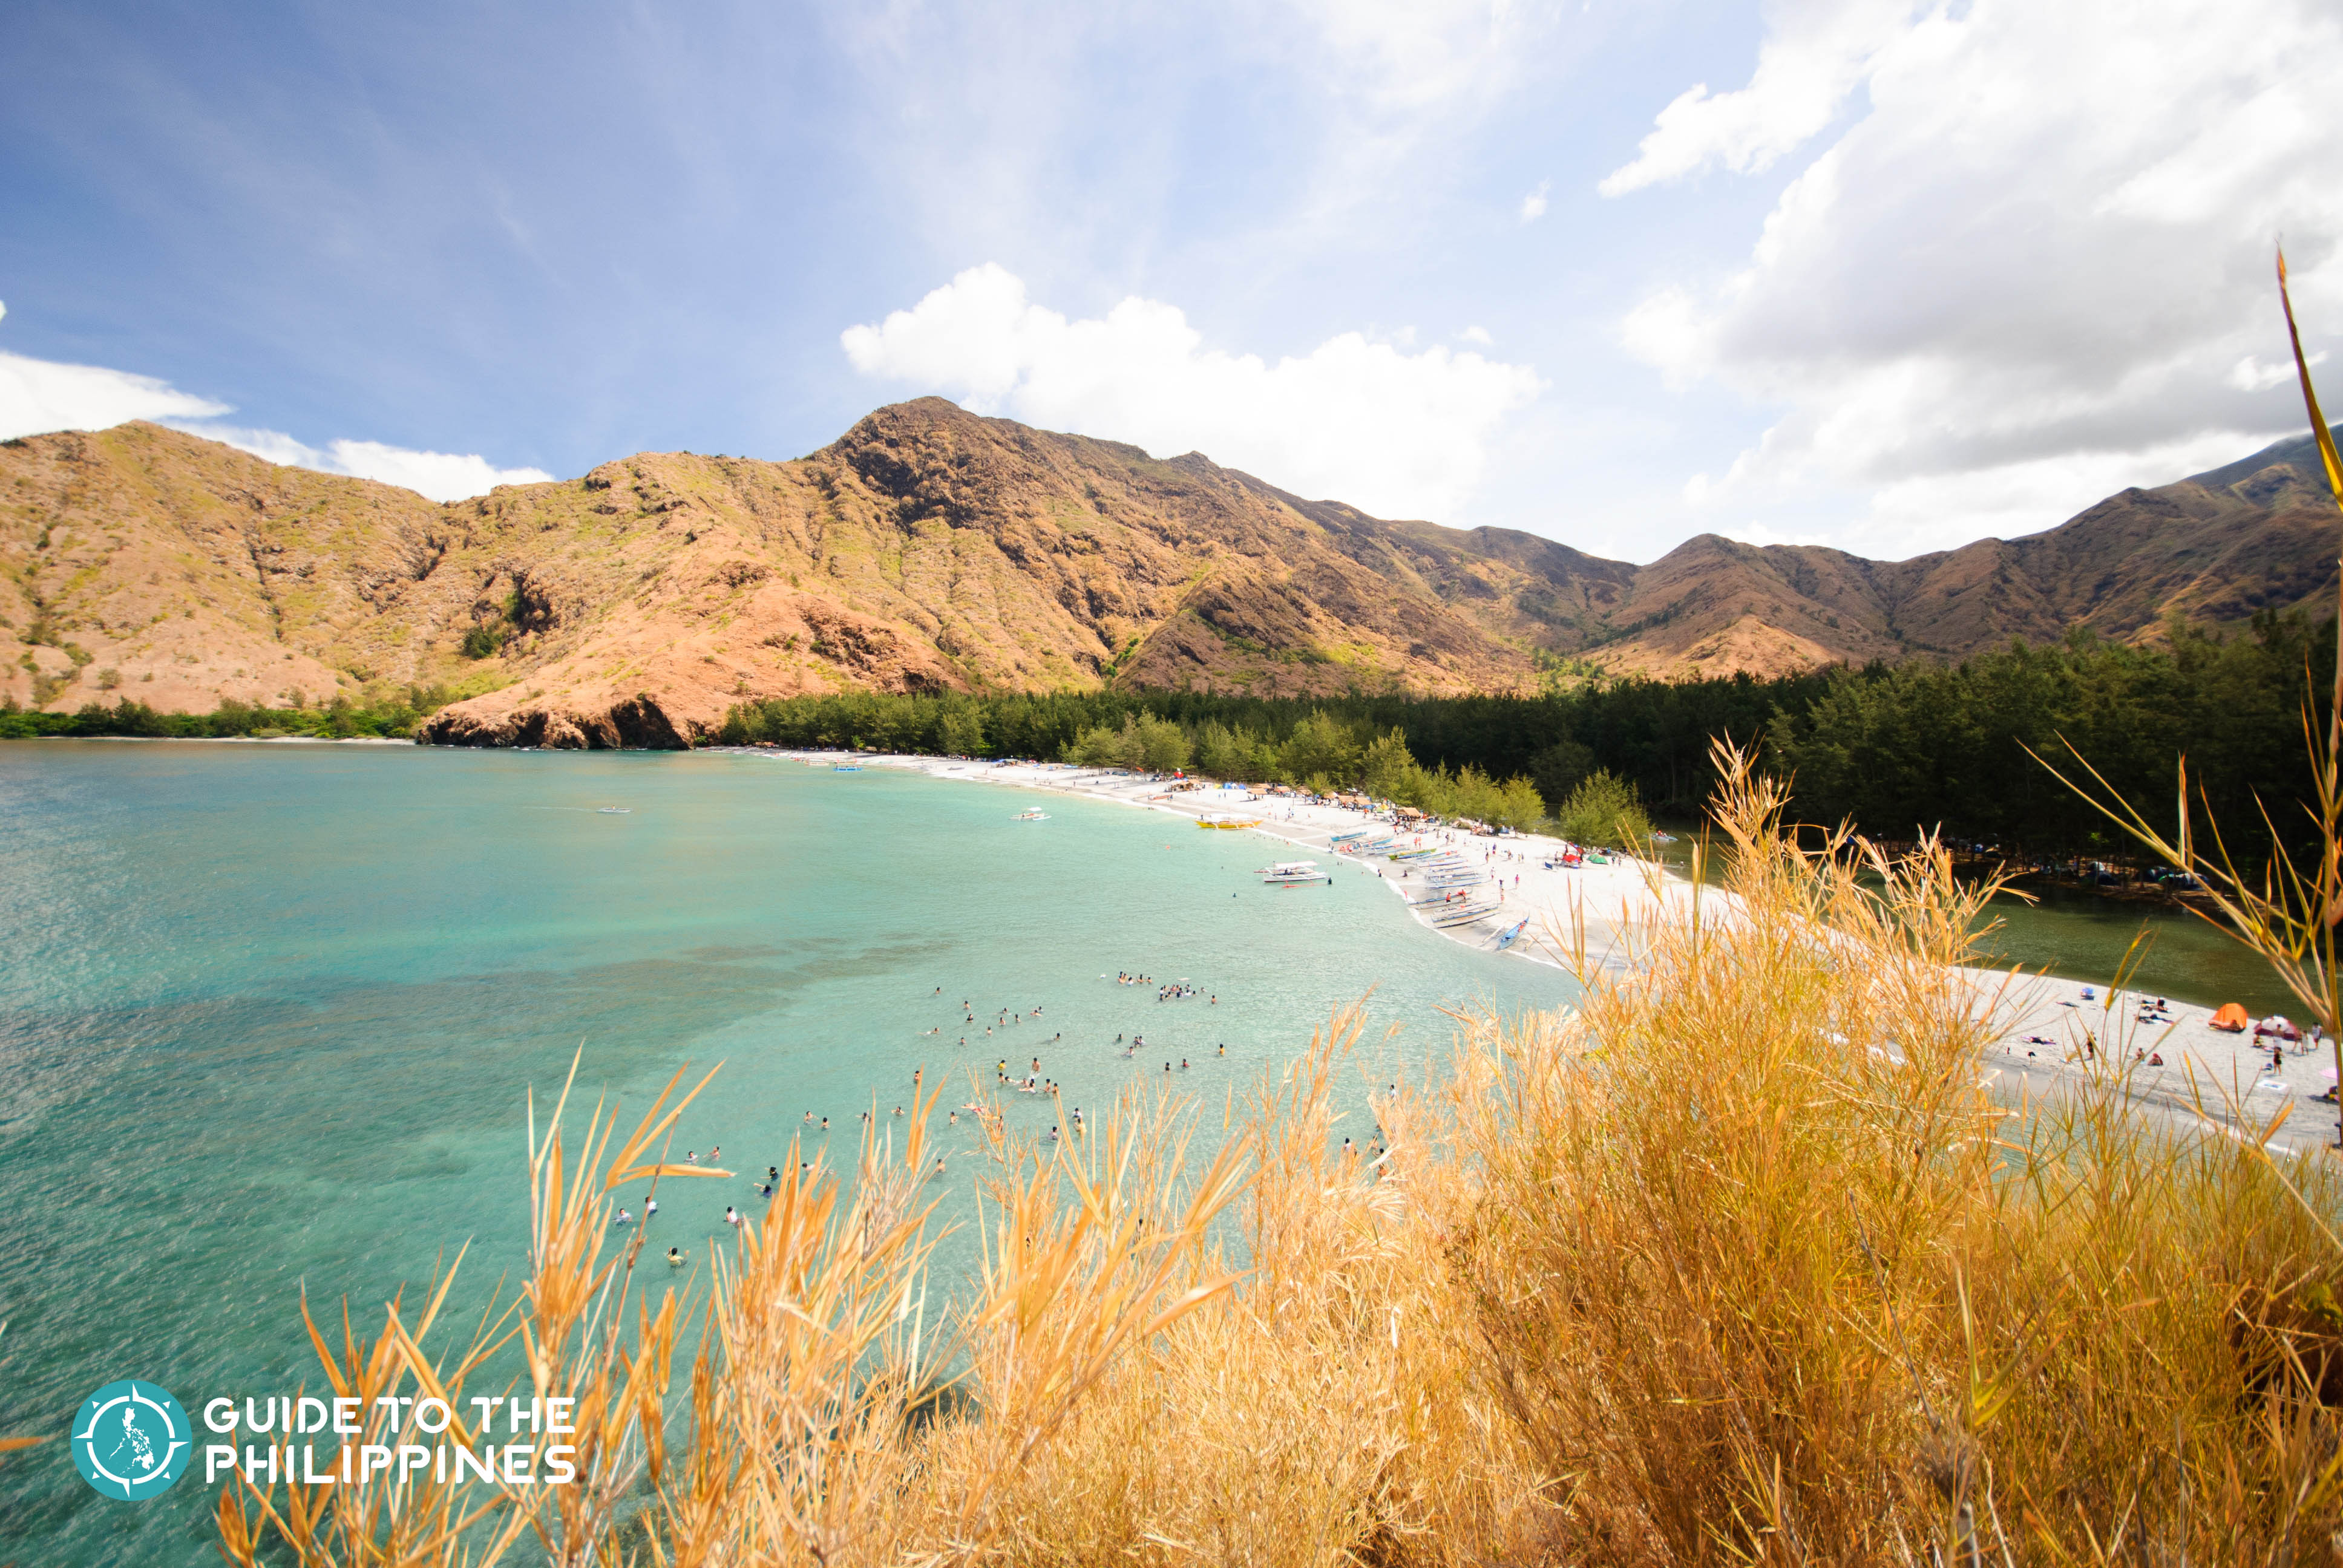 Zambales Travel Guide: Where to Go, Resorts, Travel Requirements